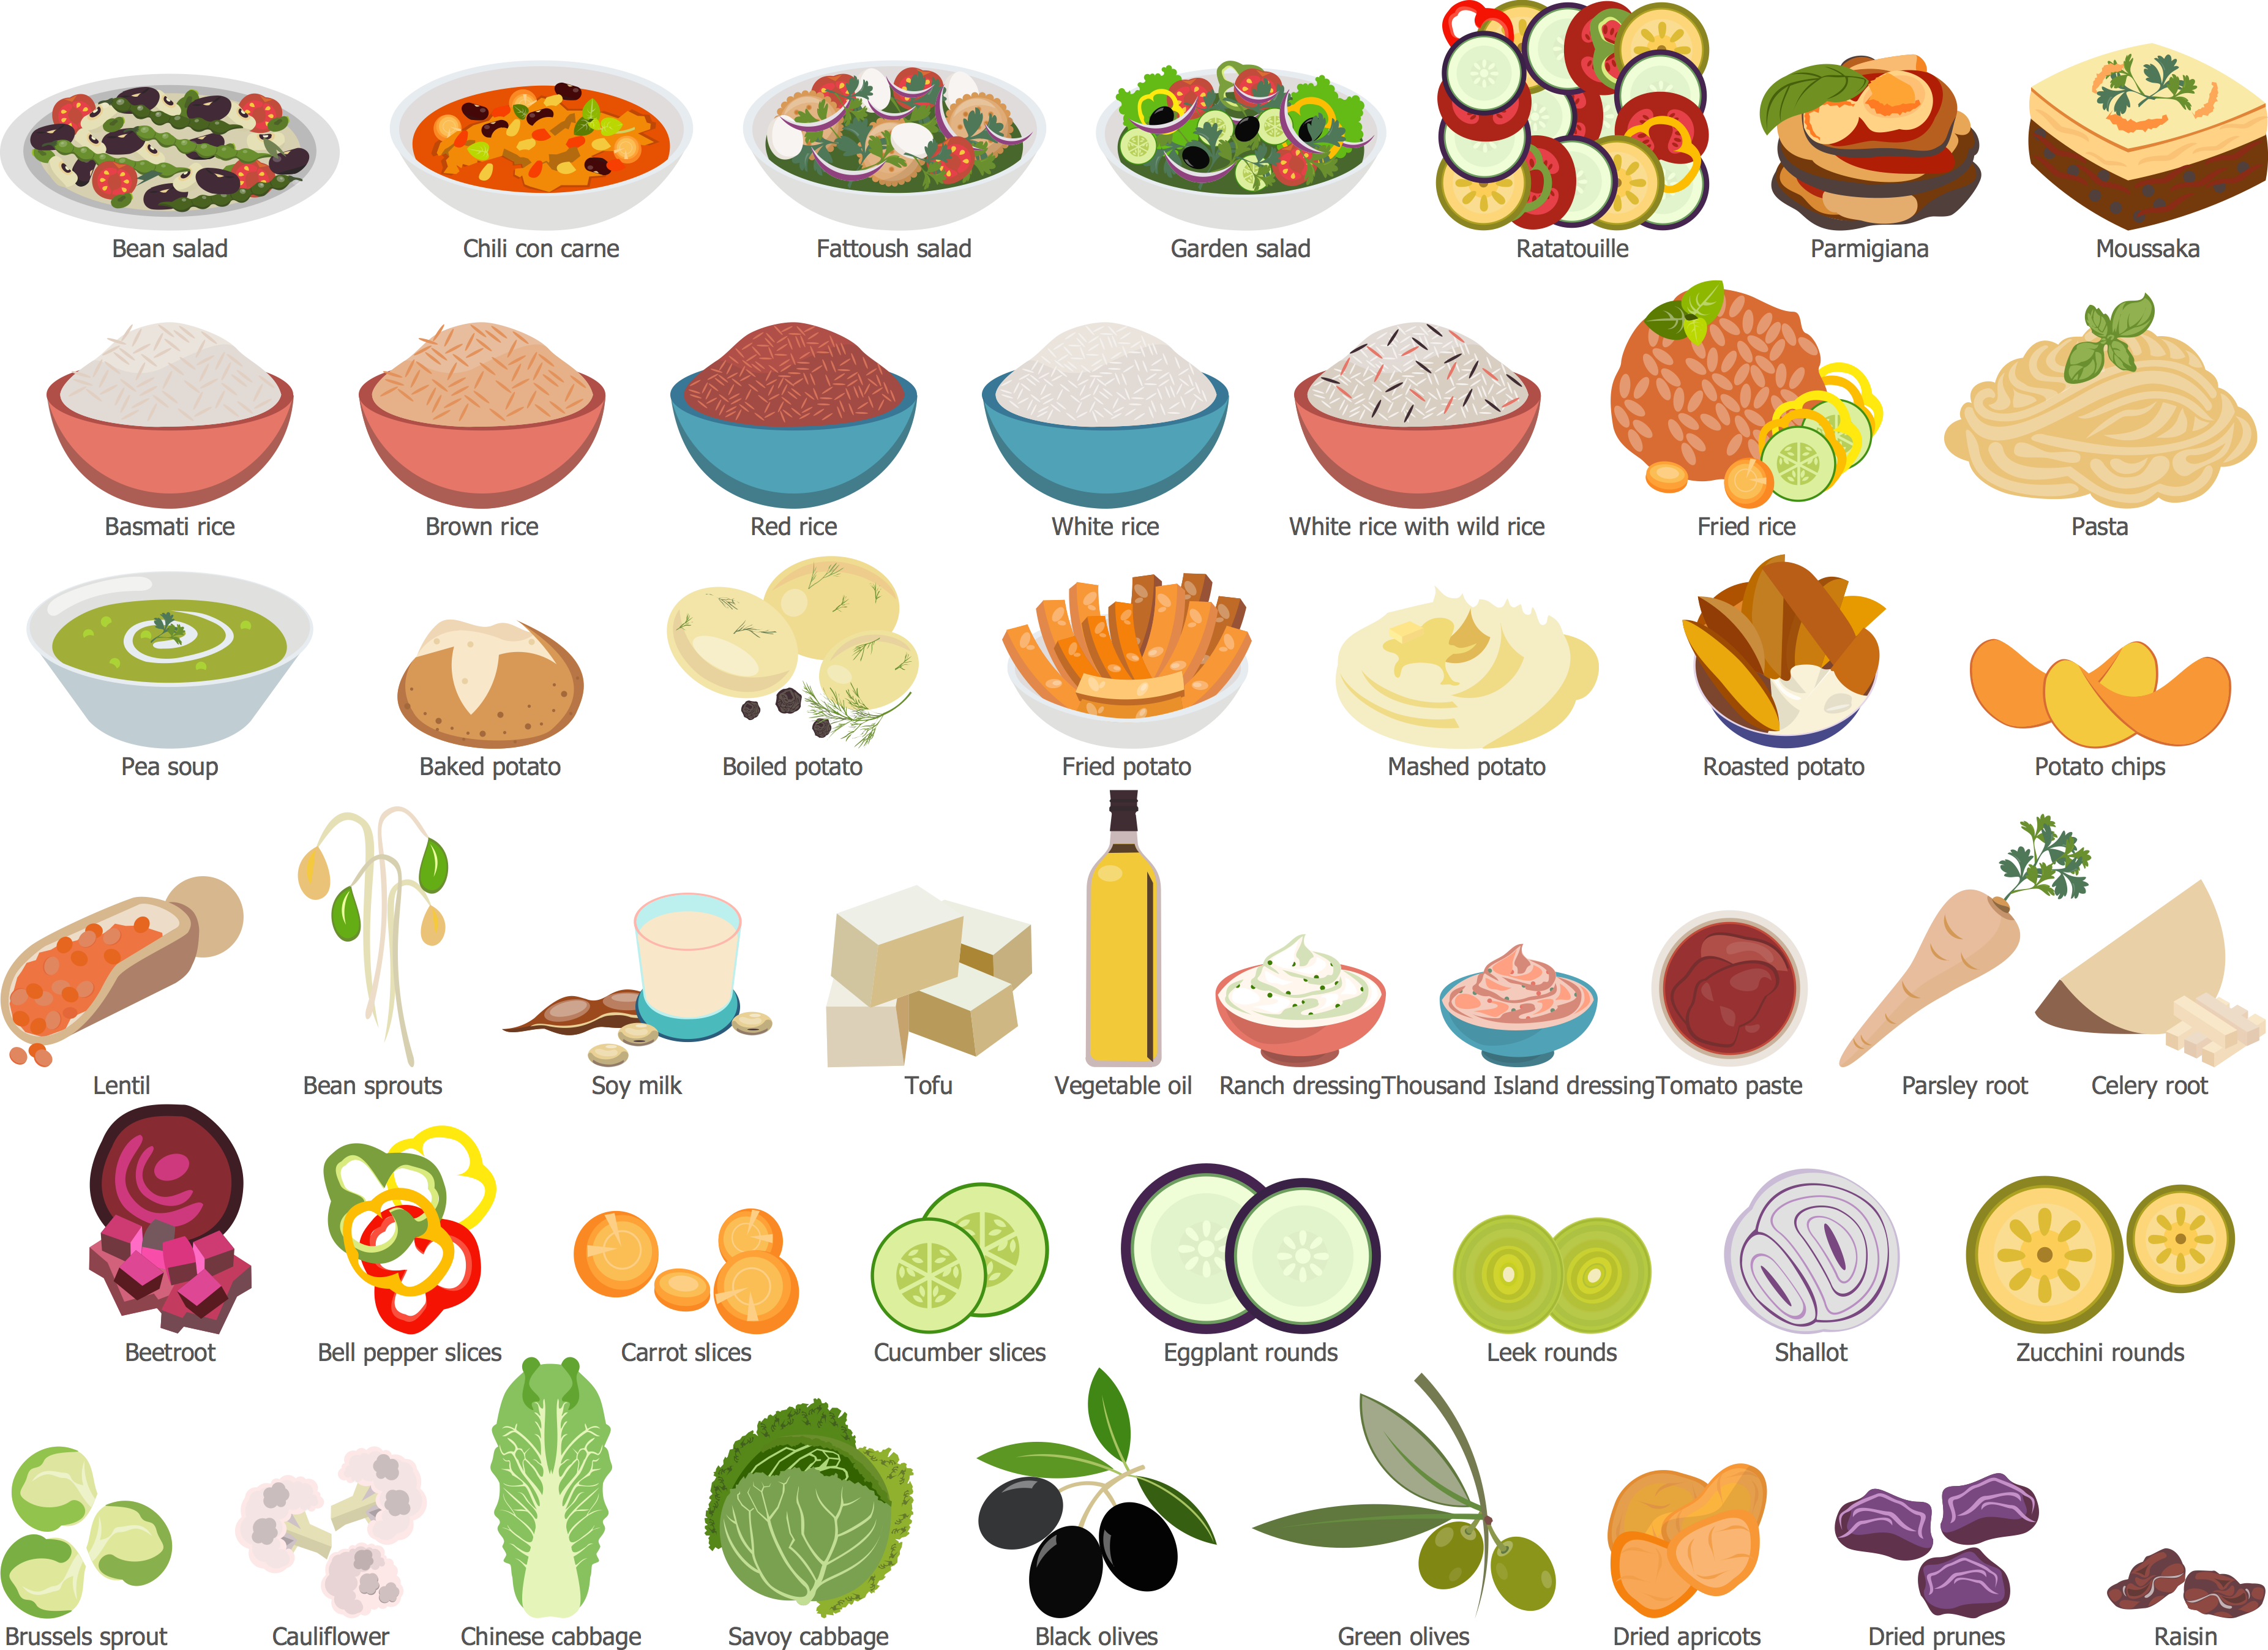 Food recipes salads side dishes and vegetables library forumfinder Image collections